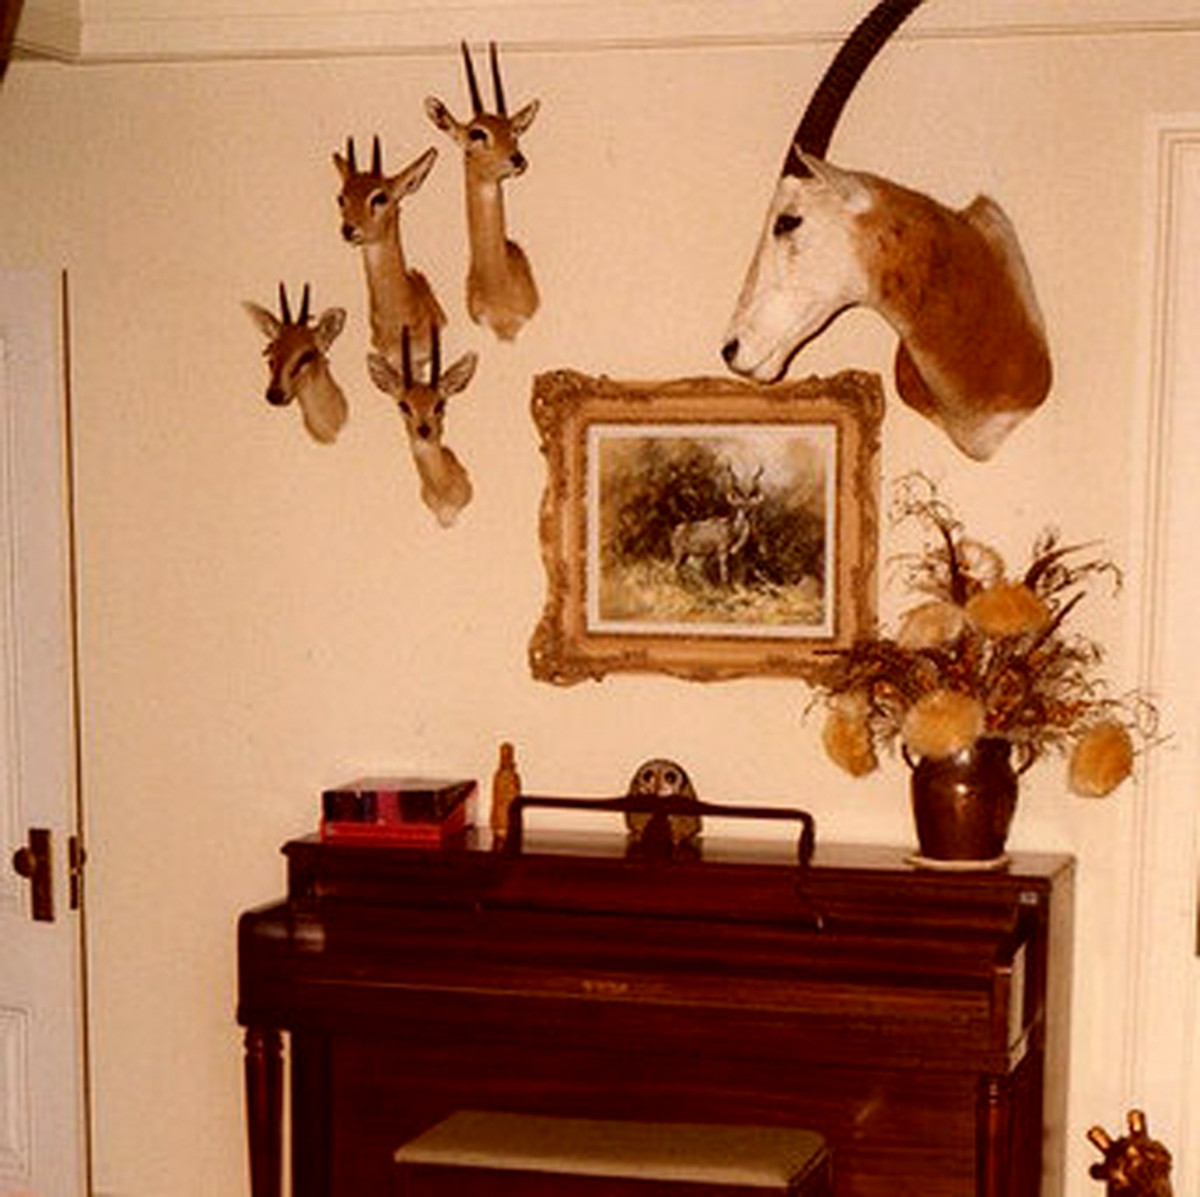 This taxidermy display doesn't work in the music room.